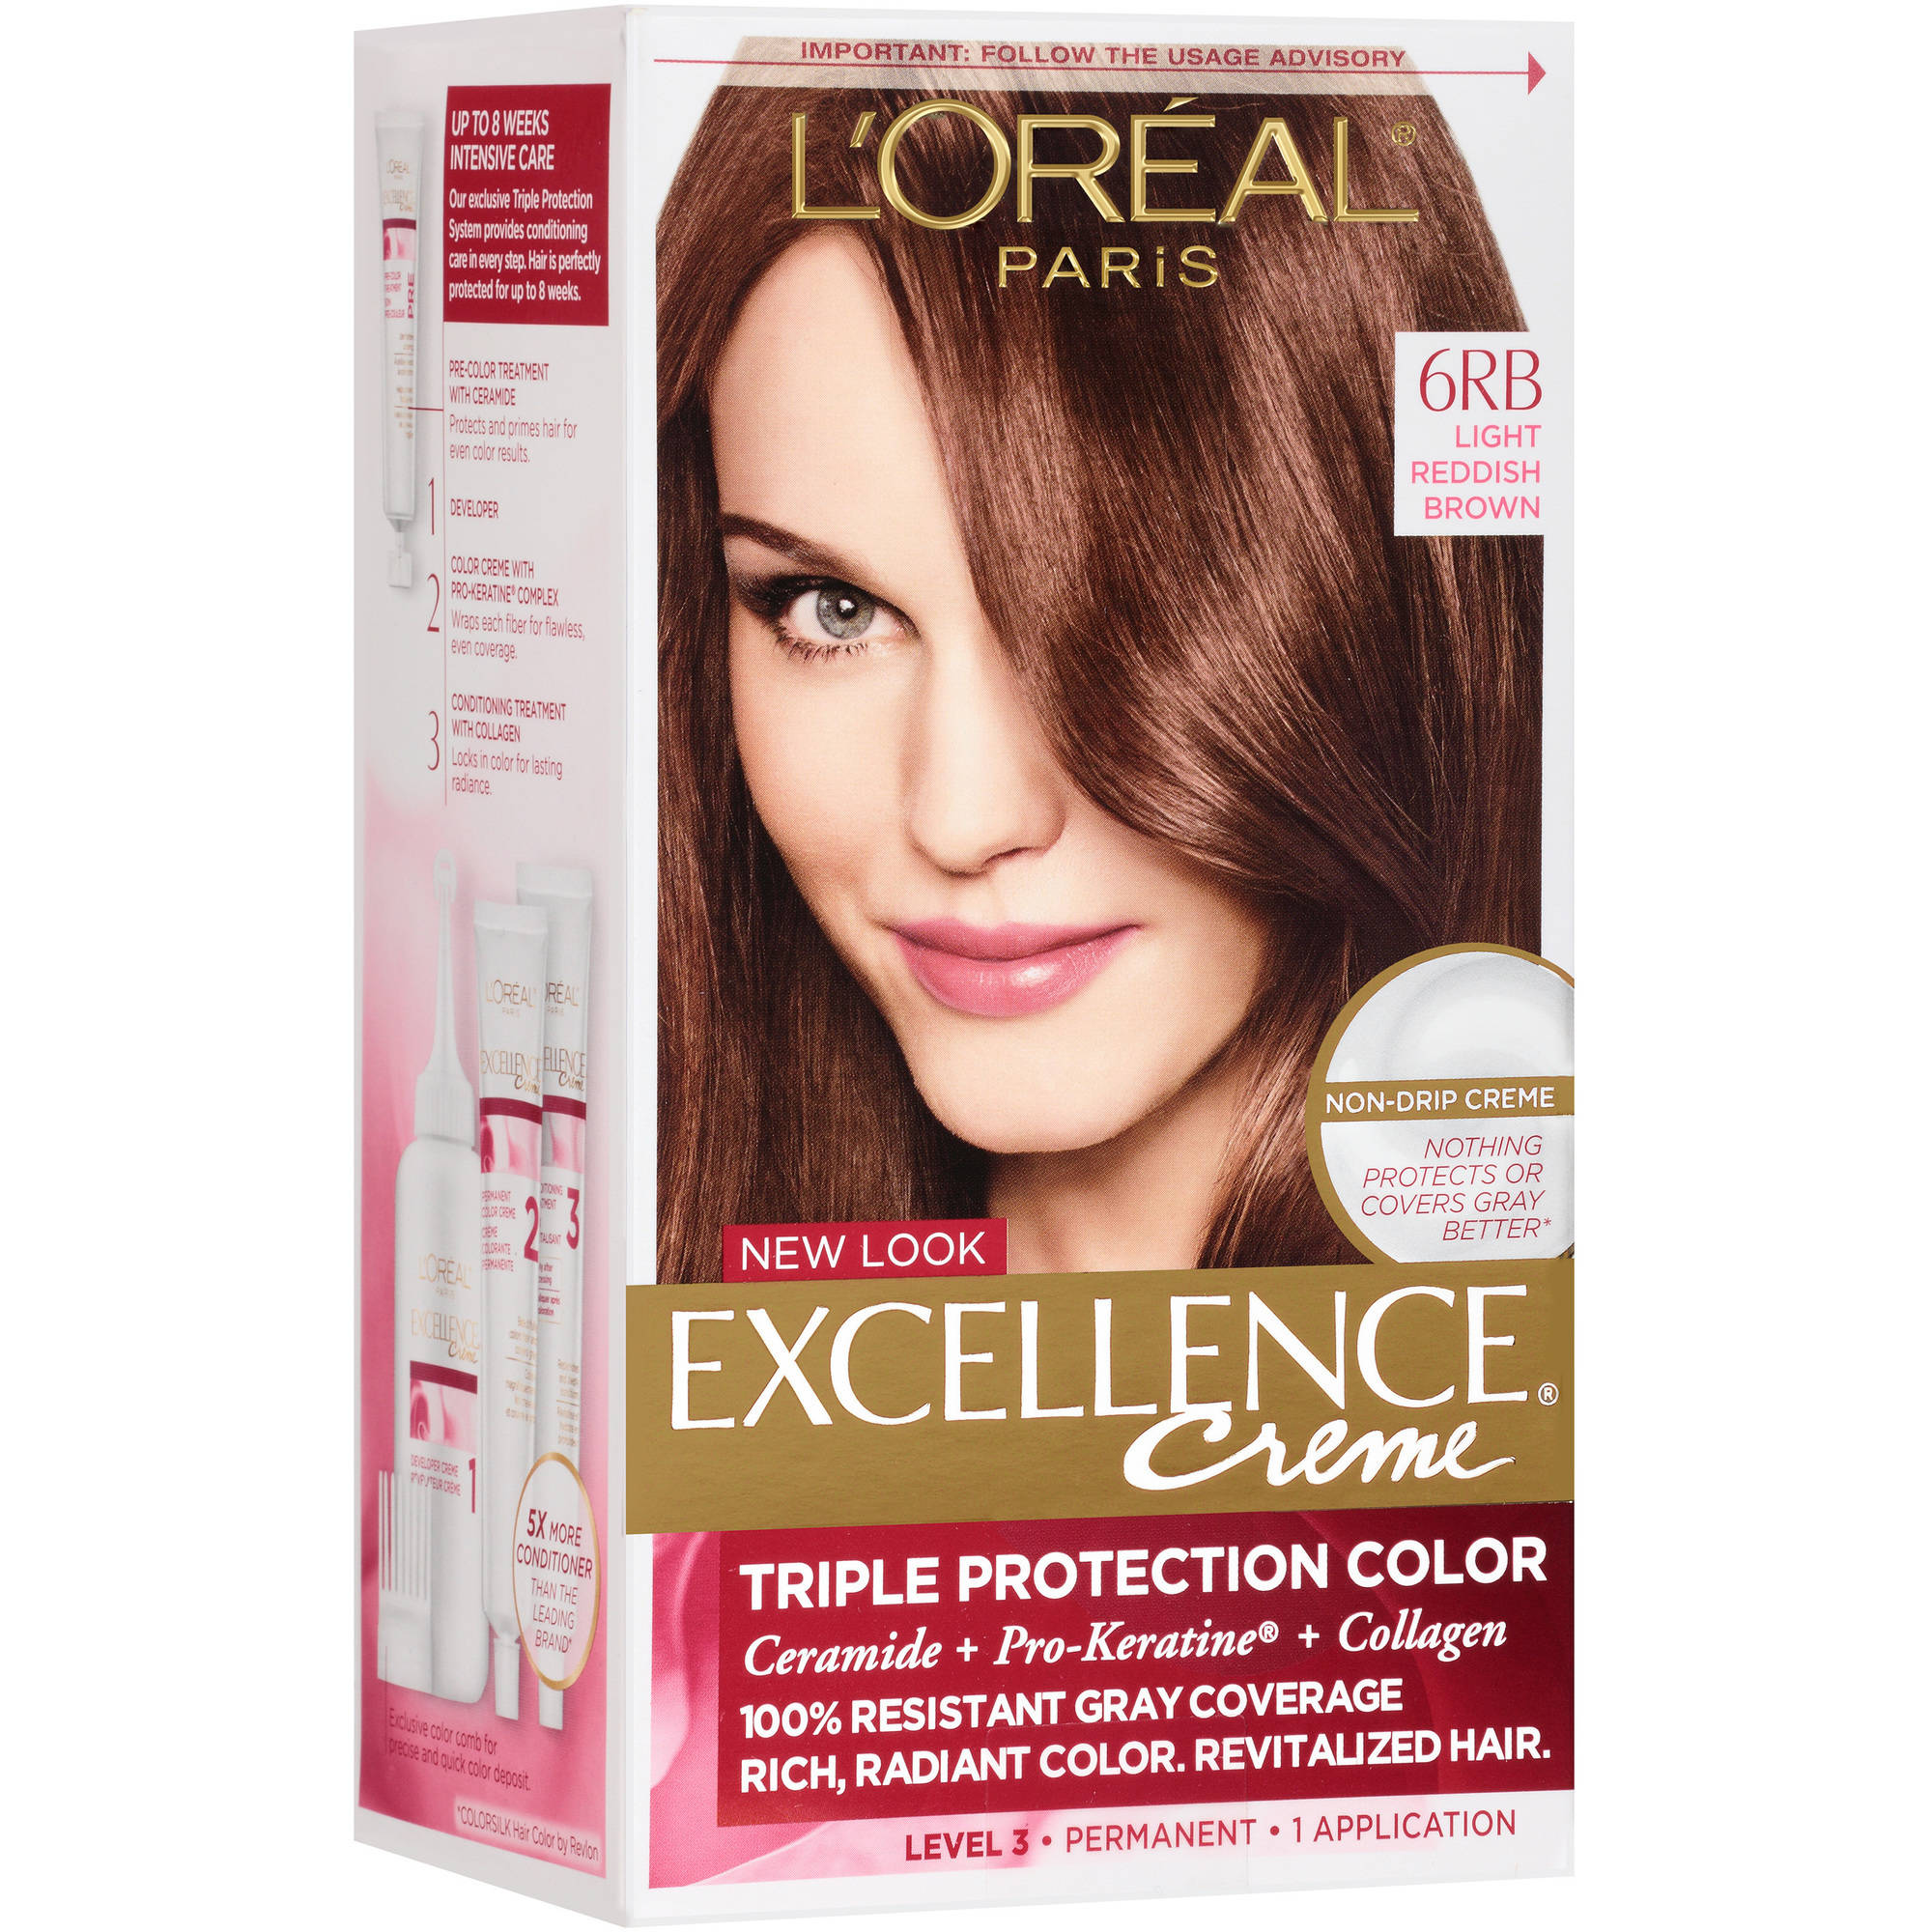 L oreal hair color - independent-allows.ml brands in beauty · Free store pick-up · Top brands - low prices.